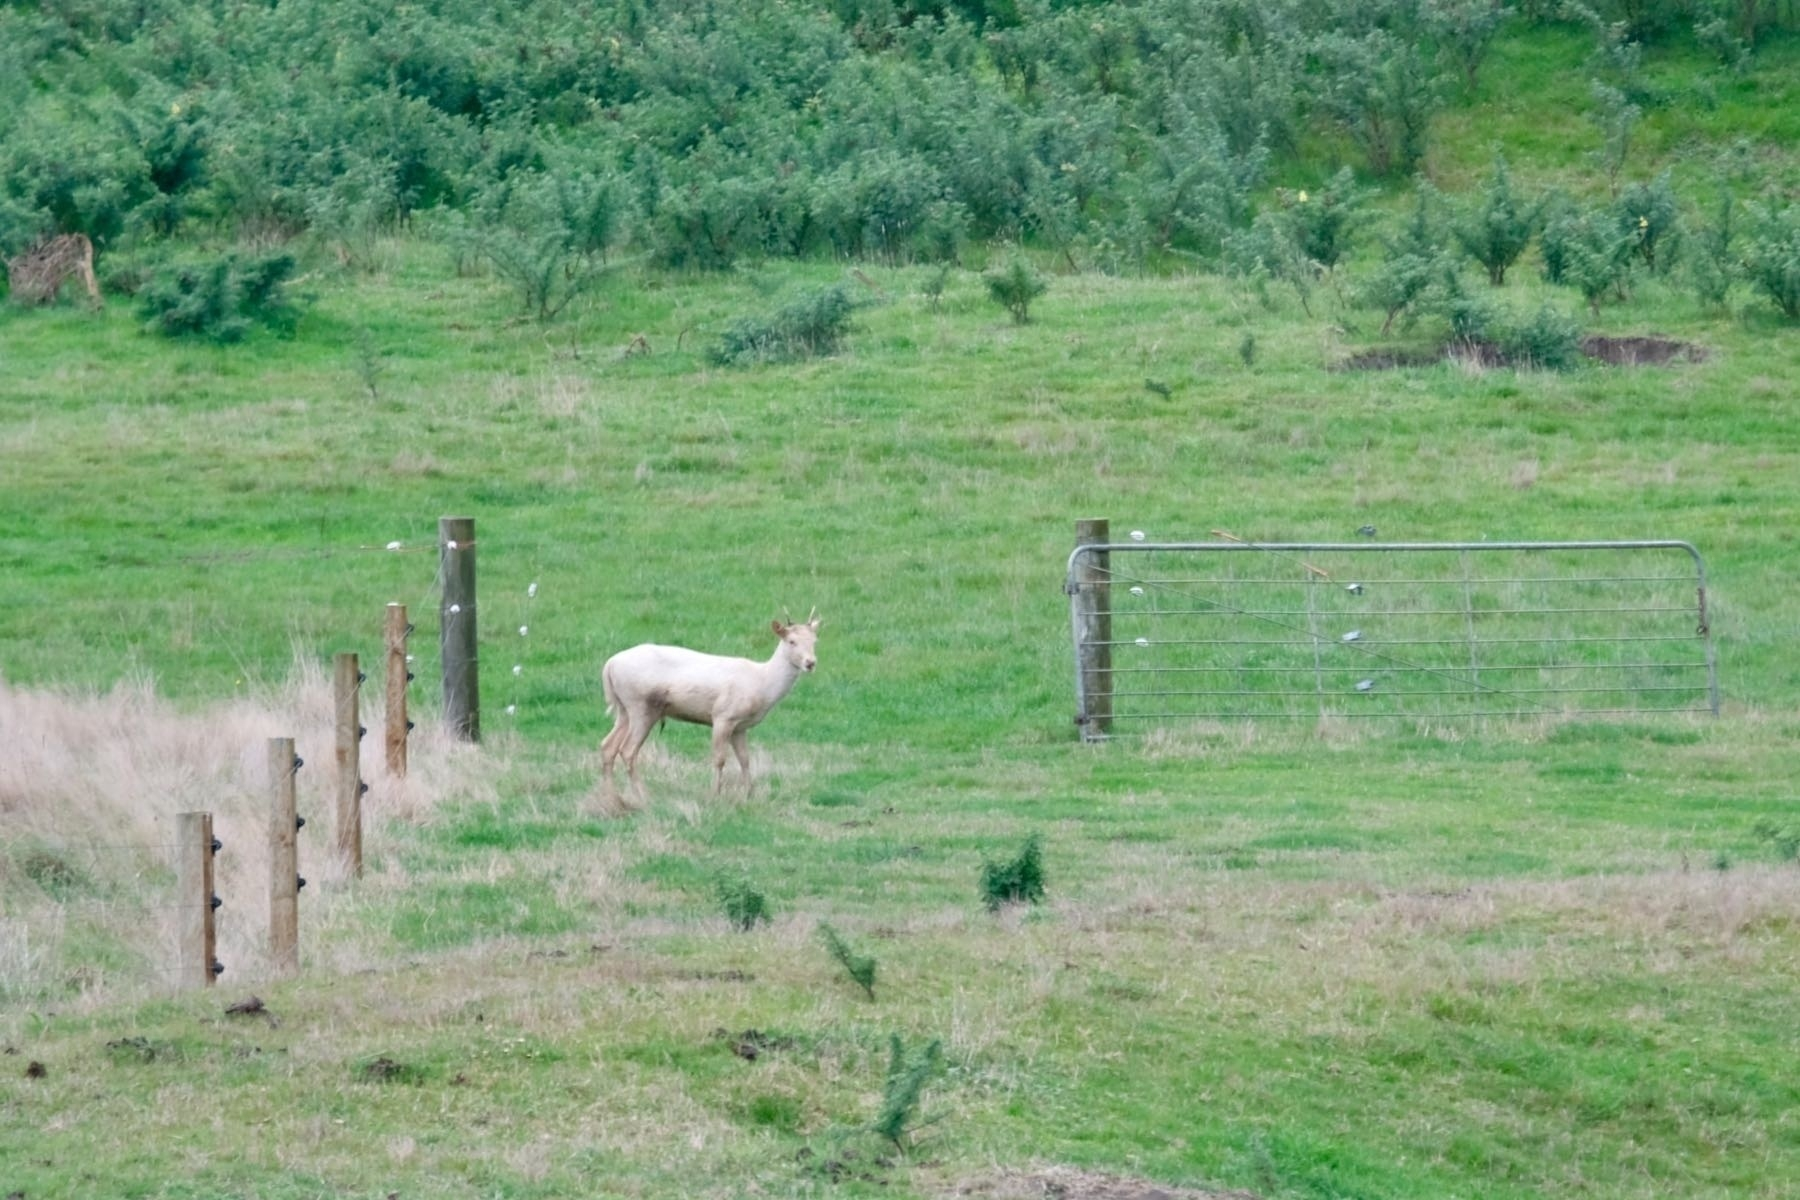 Pale coloured deer with small horns in a paddock.